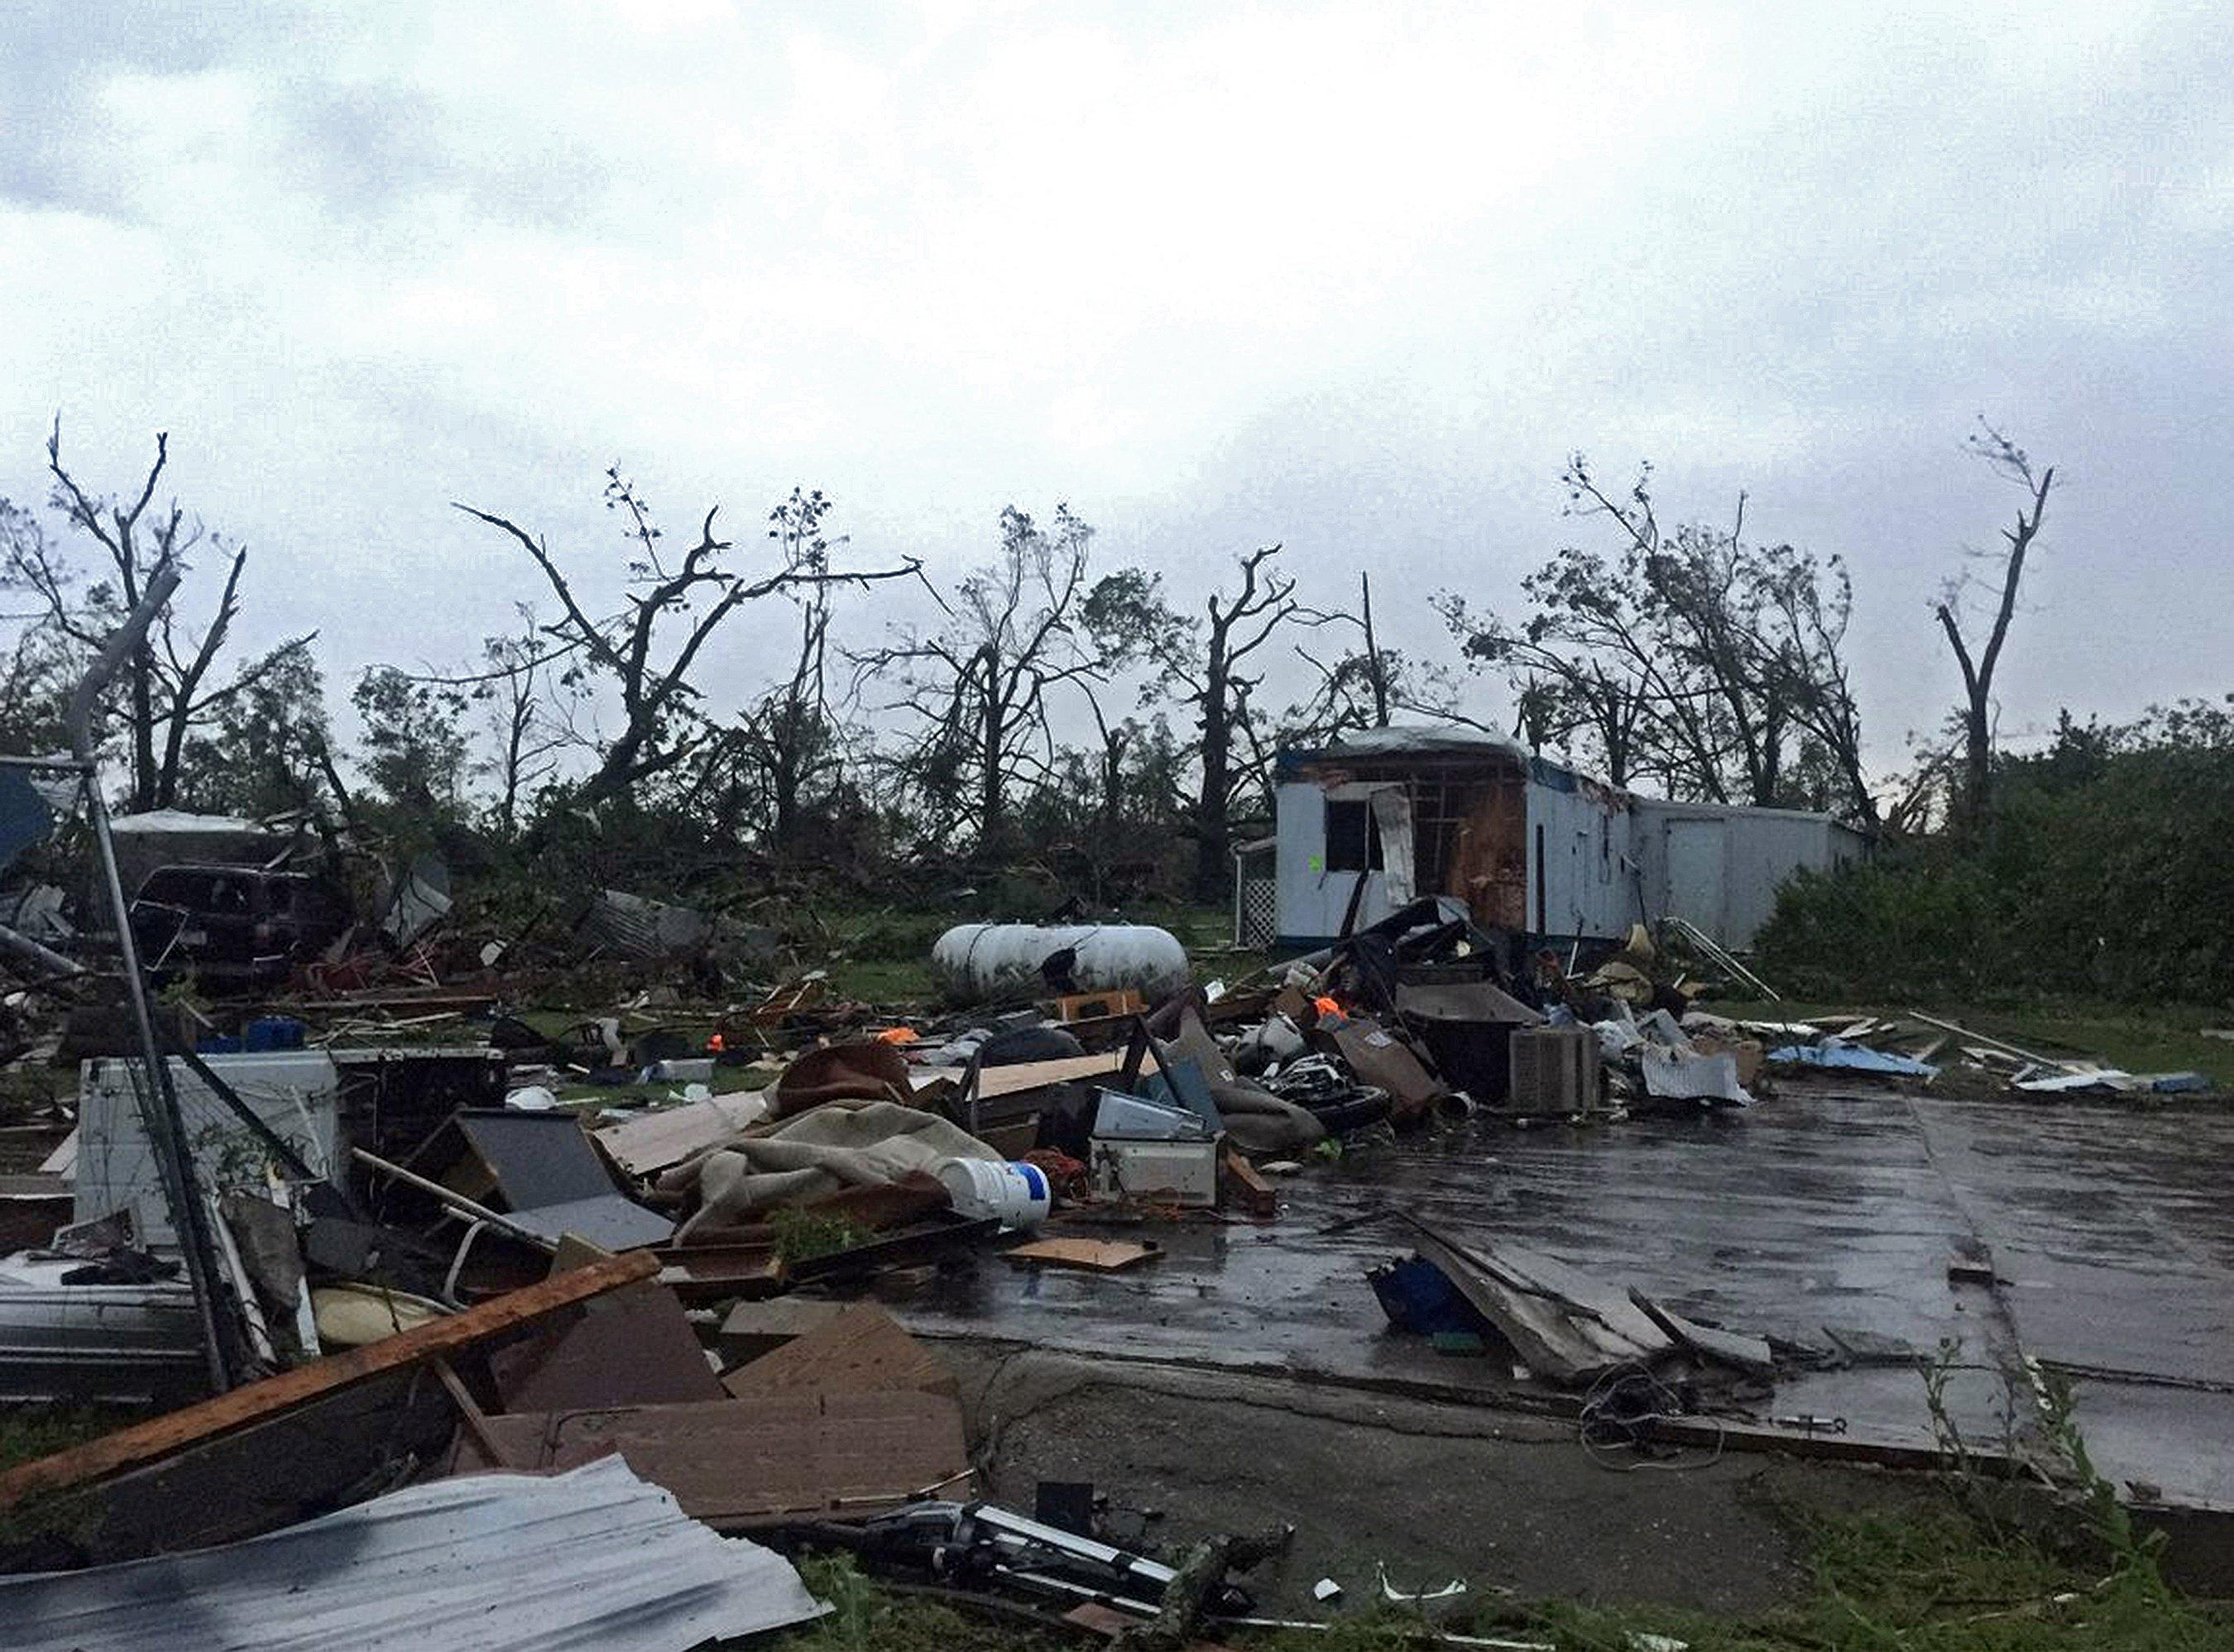 Marvelous Husband And Wife Killed In Missouri Tornado The Home Is Home Interior And Landscaping Oversignezvosmurscom